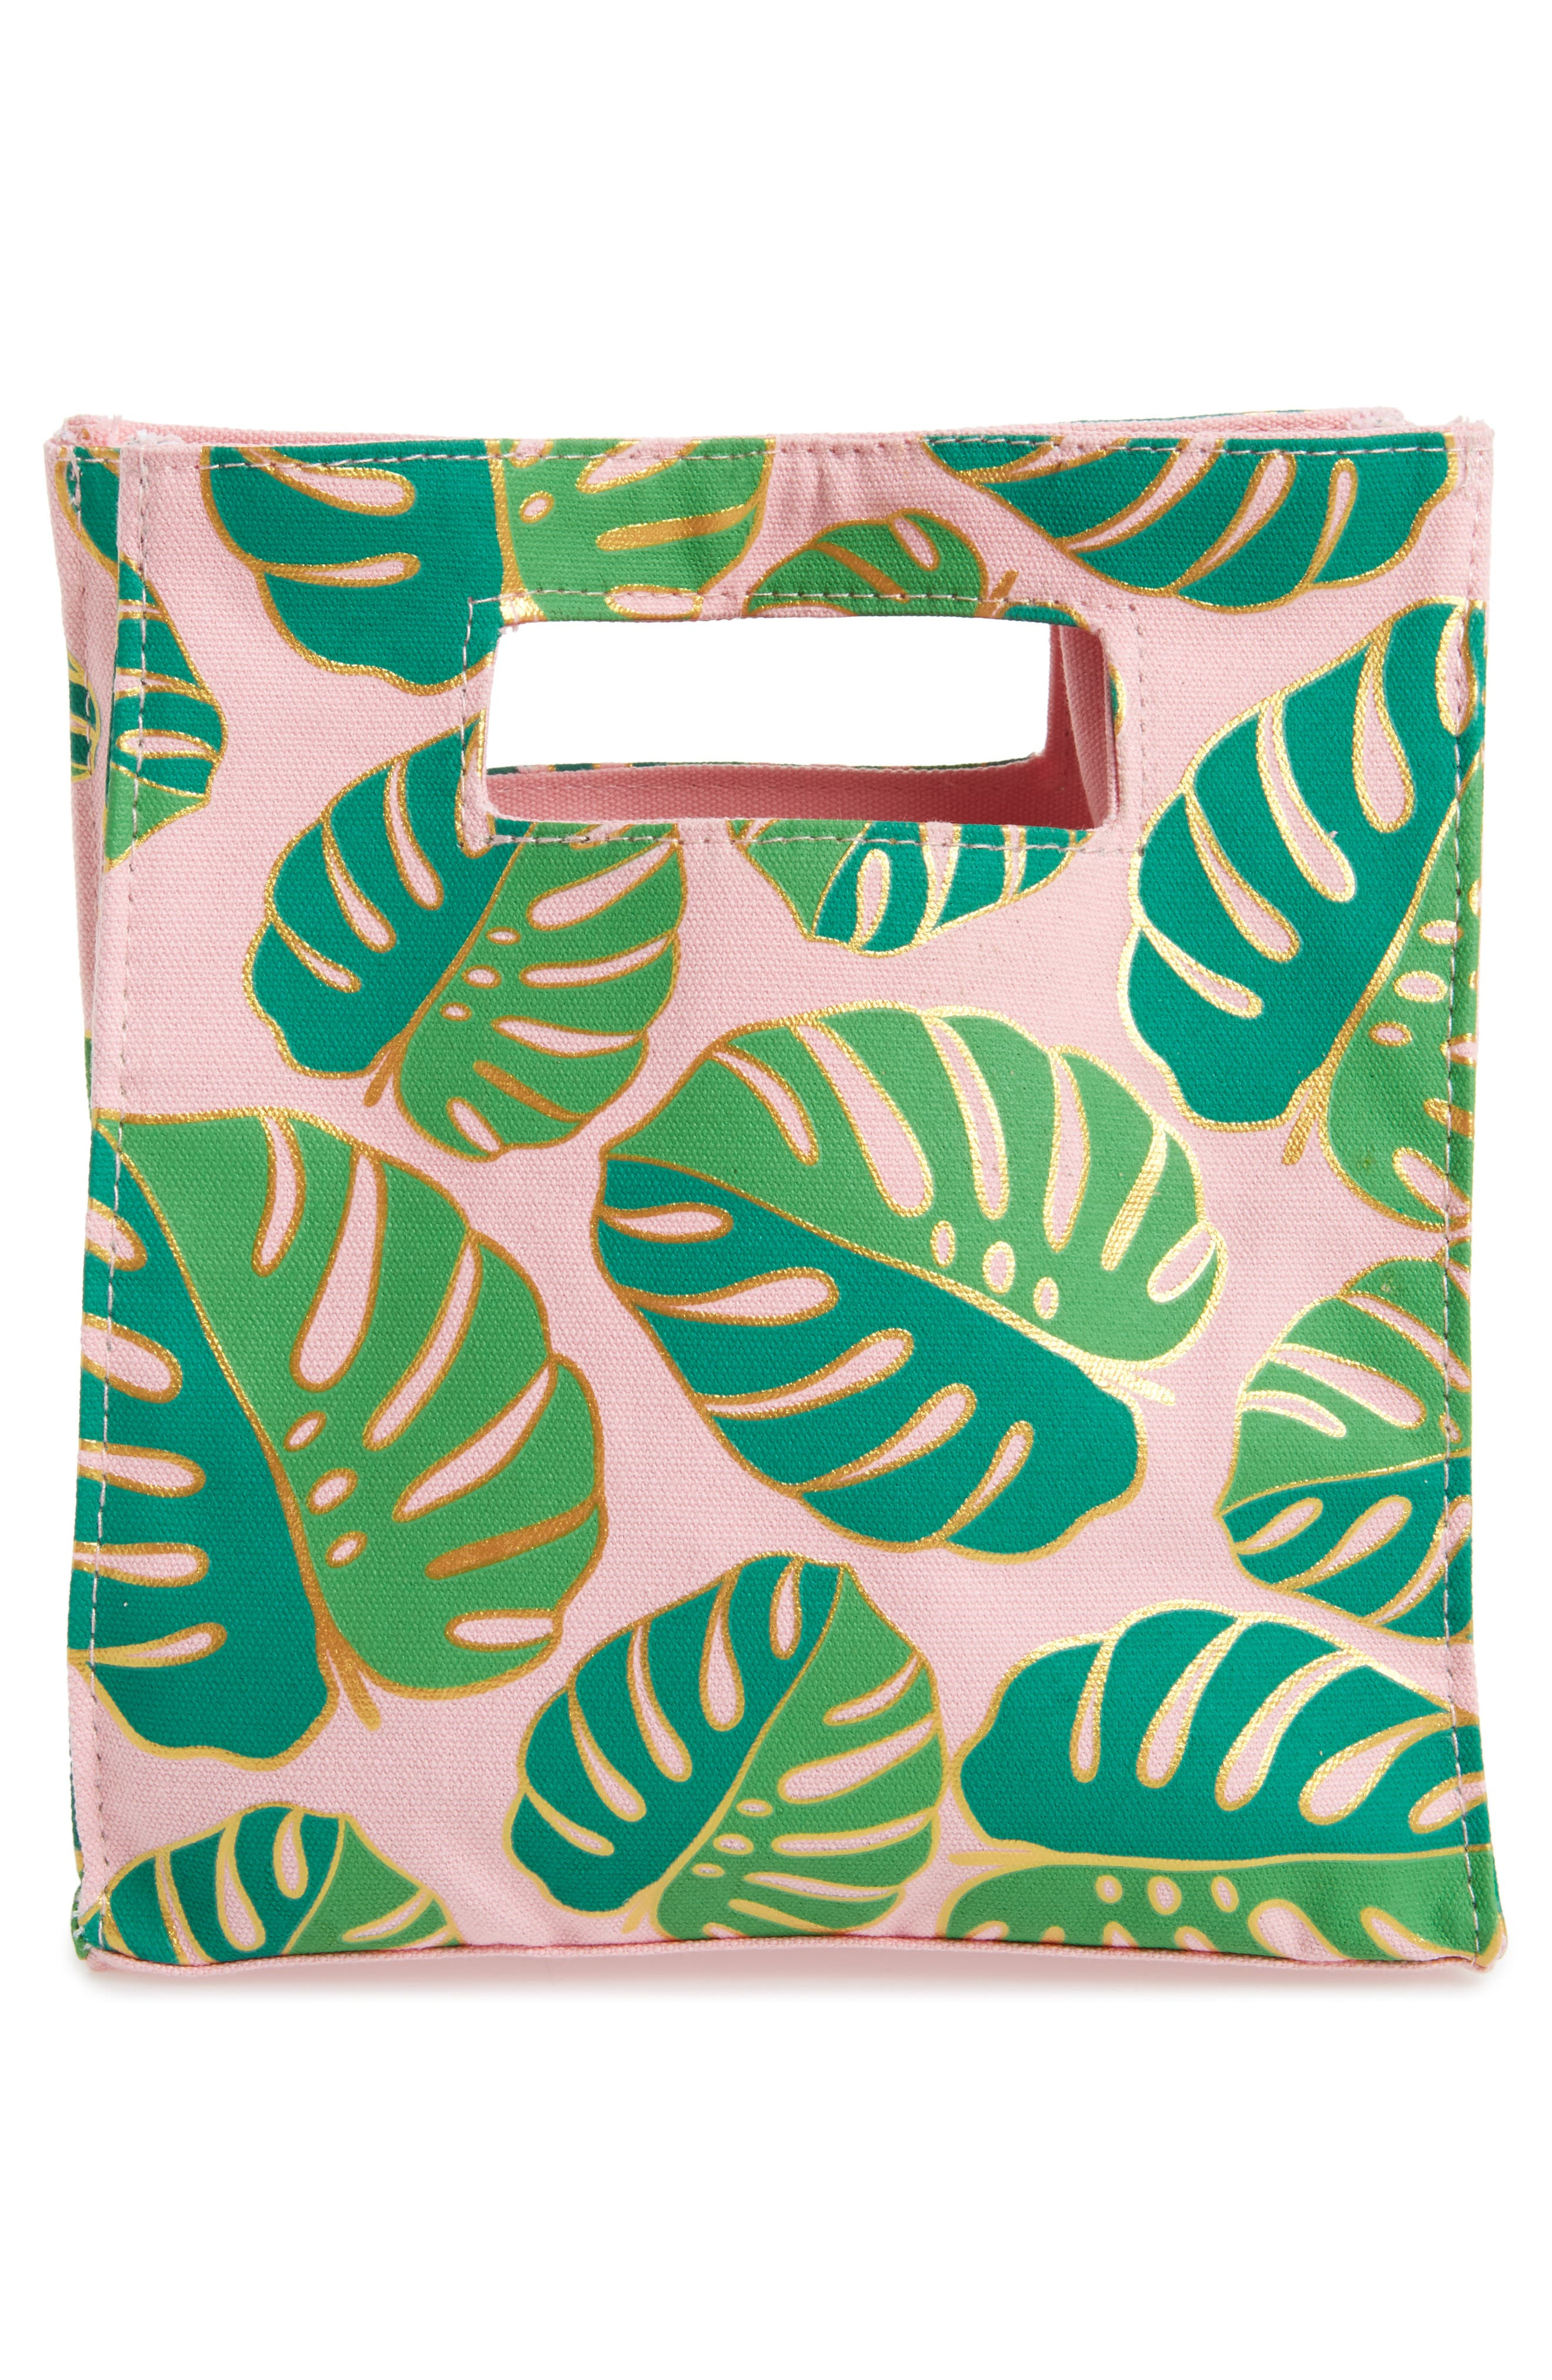 SLANT COLLECTIONS,                             Monstera Print Canvas Tote,                             Alternate thumbnail 2, color,                             653